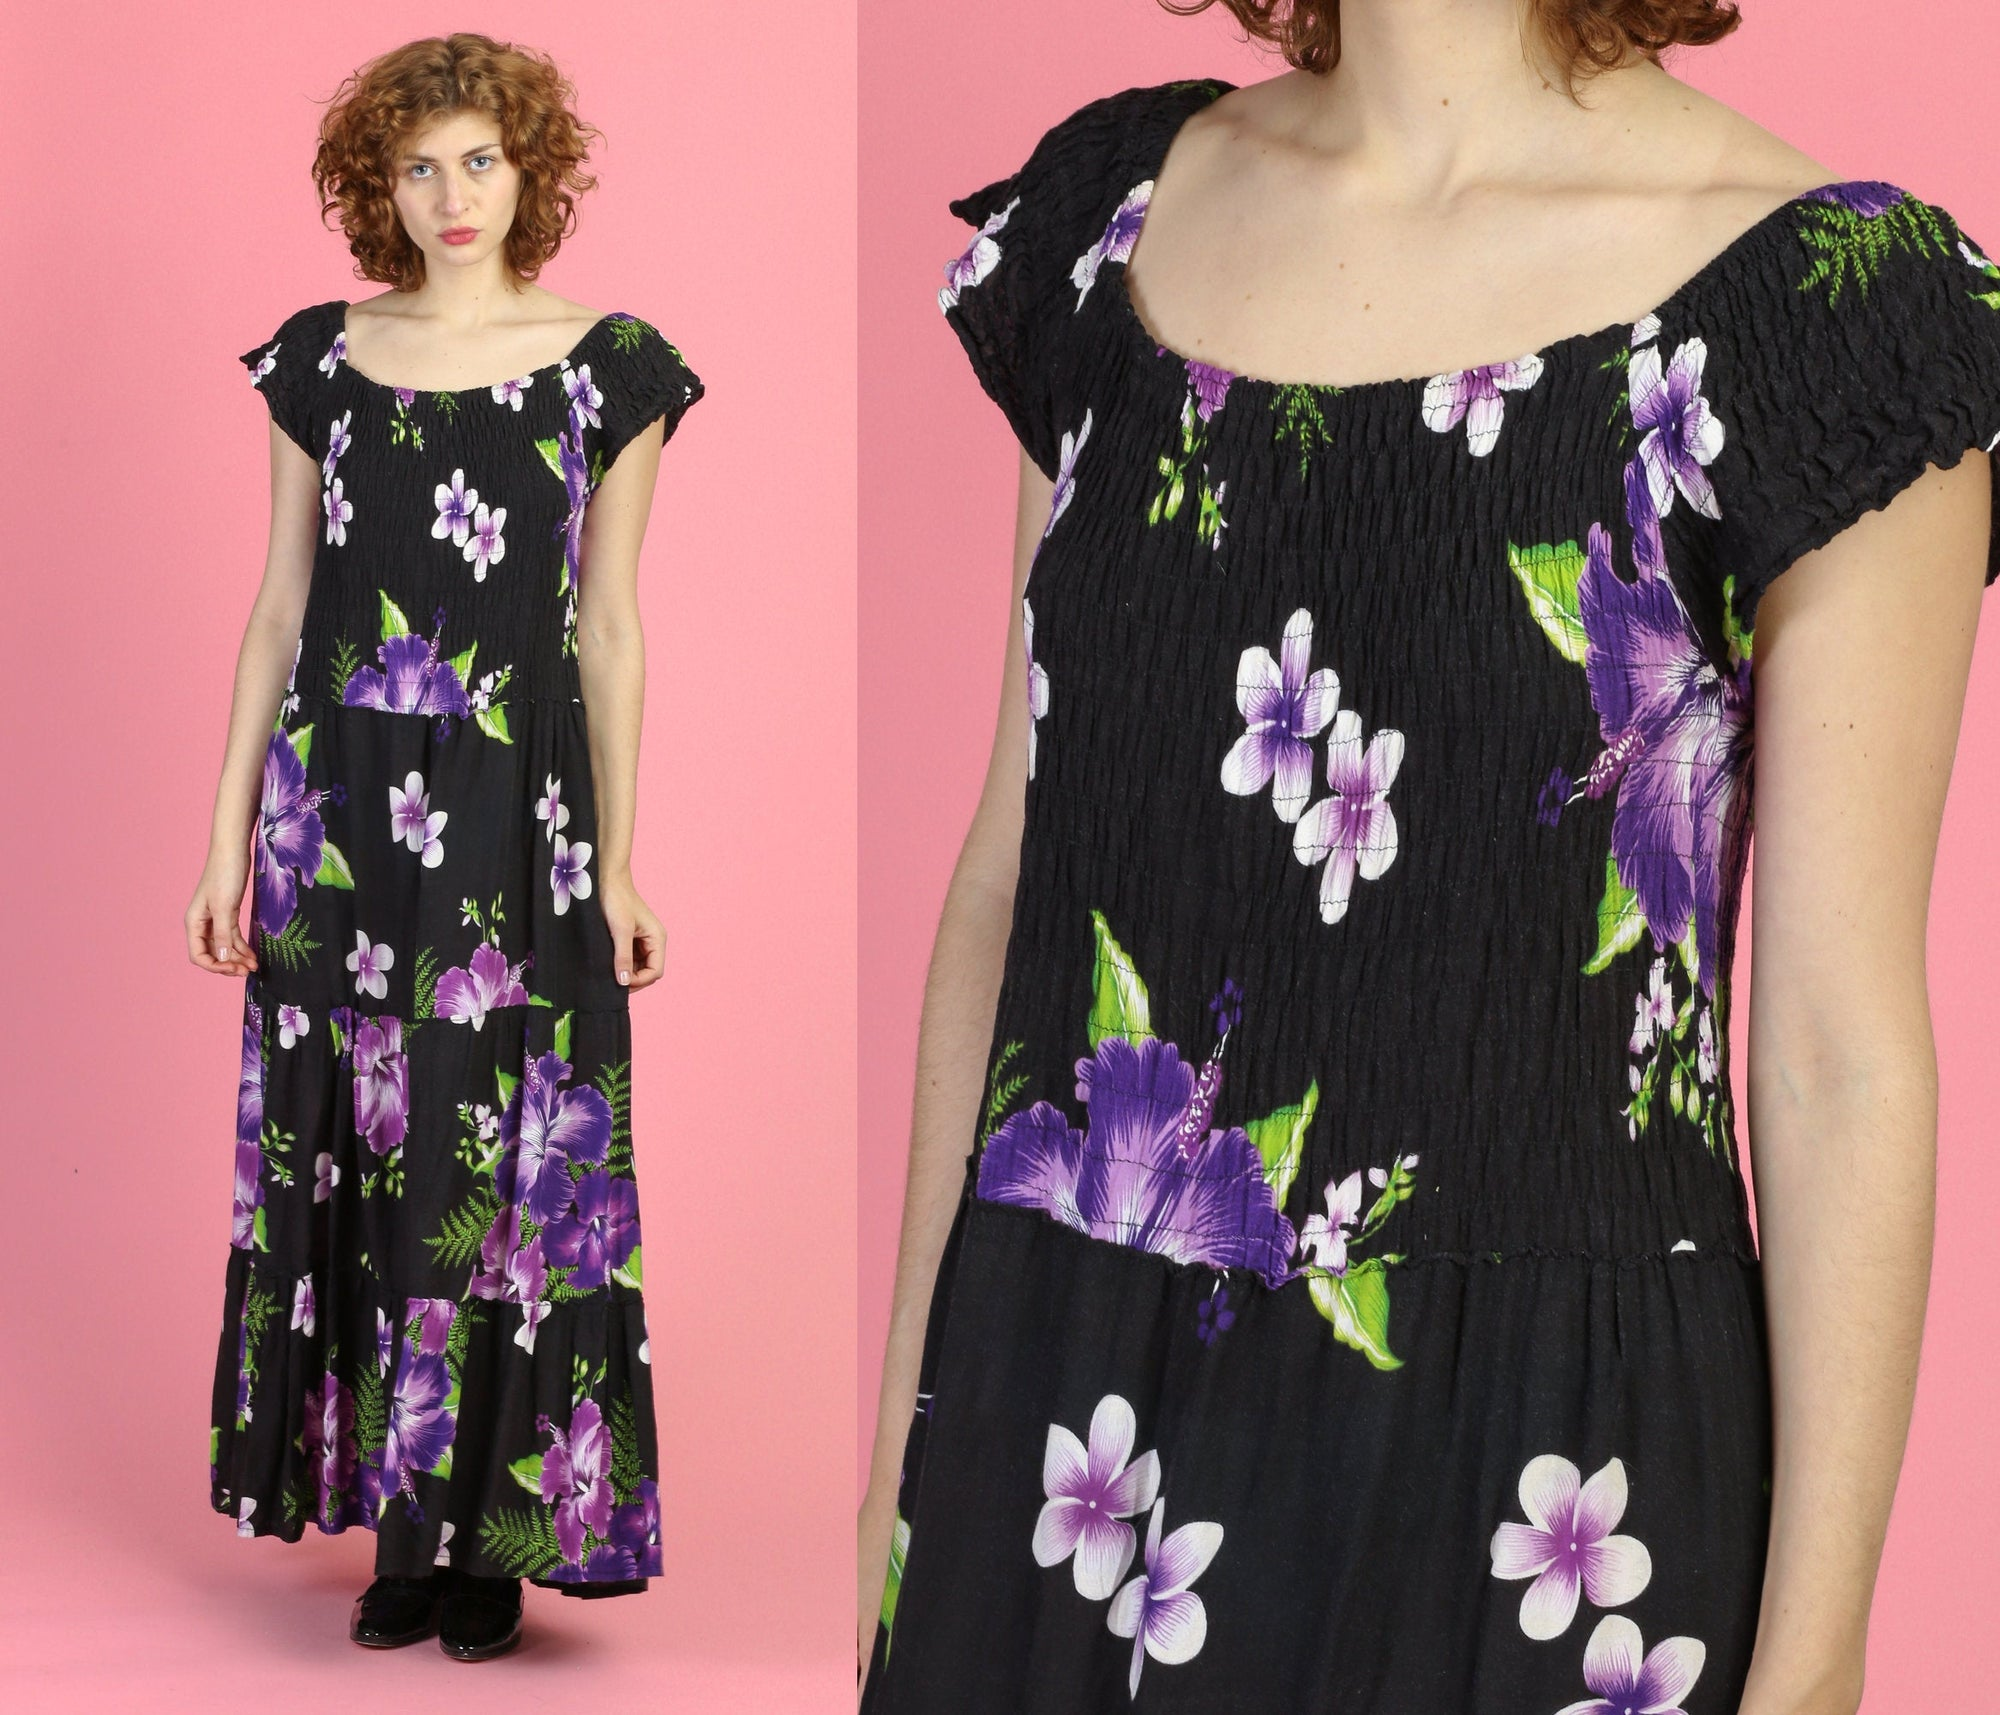 90s Floral Maxi Sundress - Small to Medium